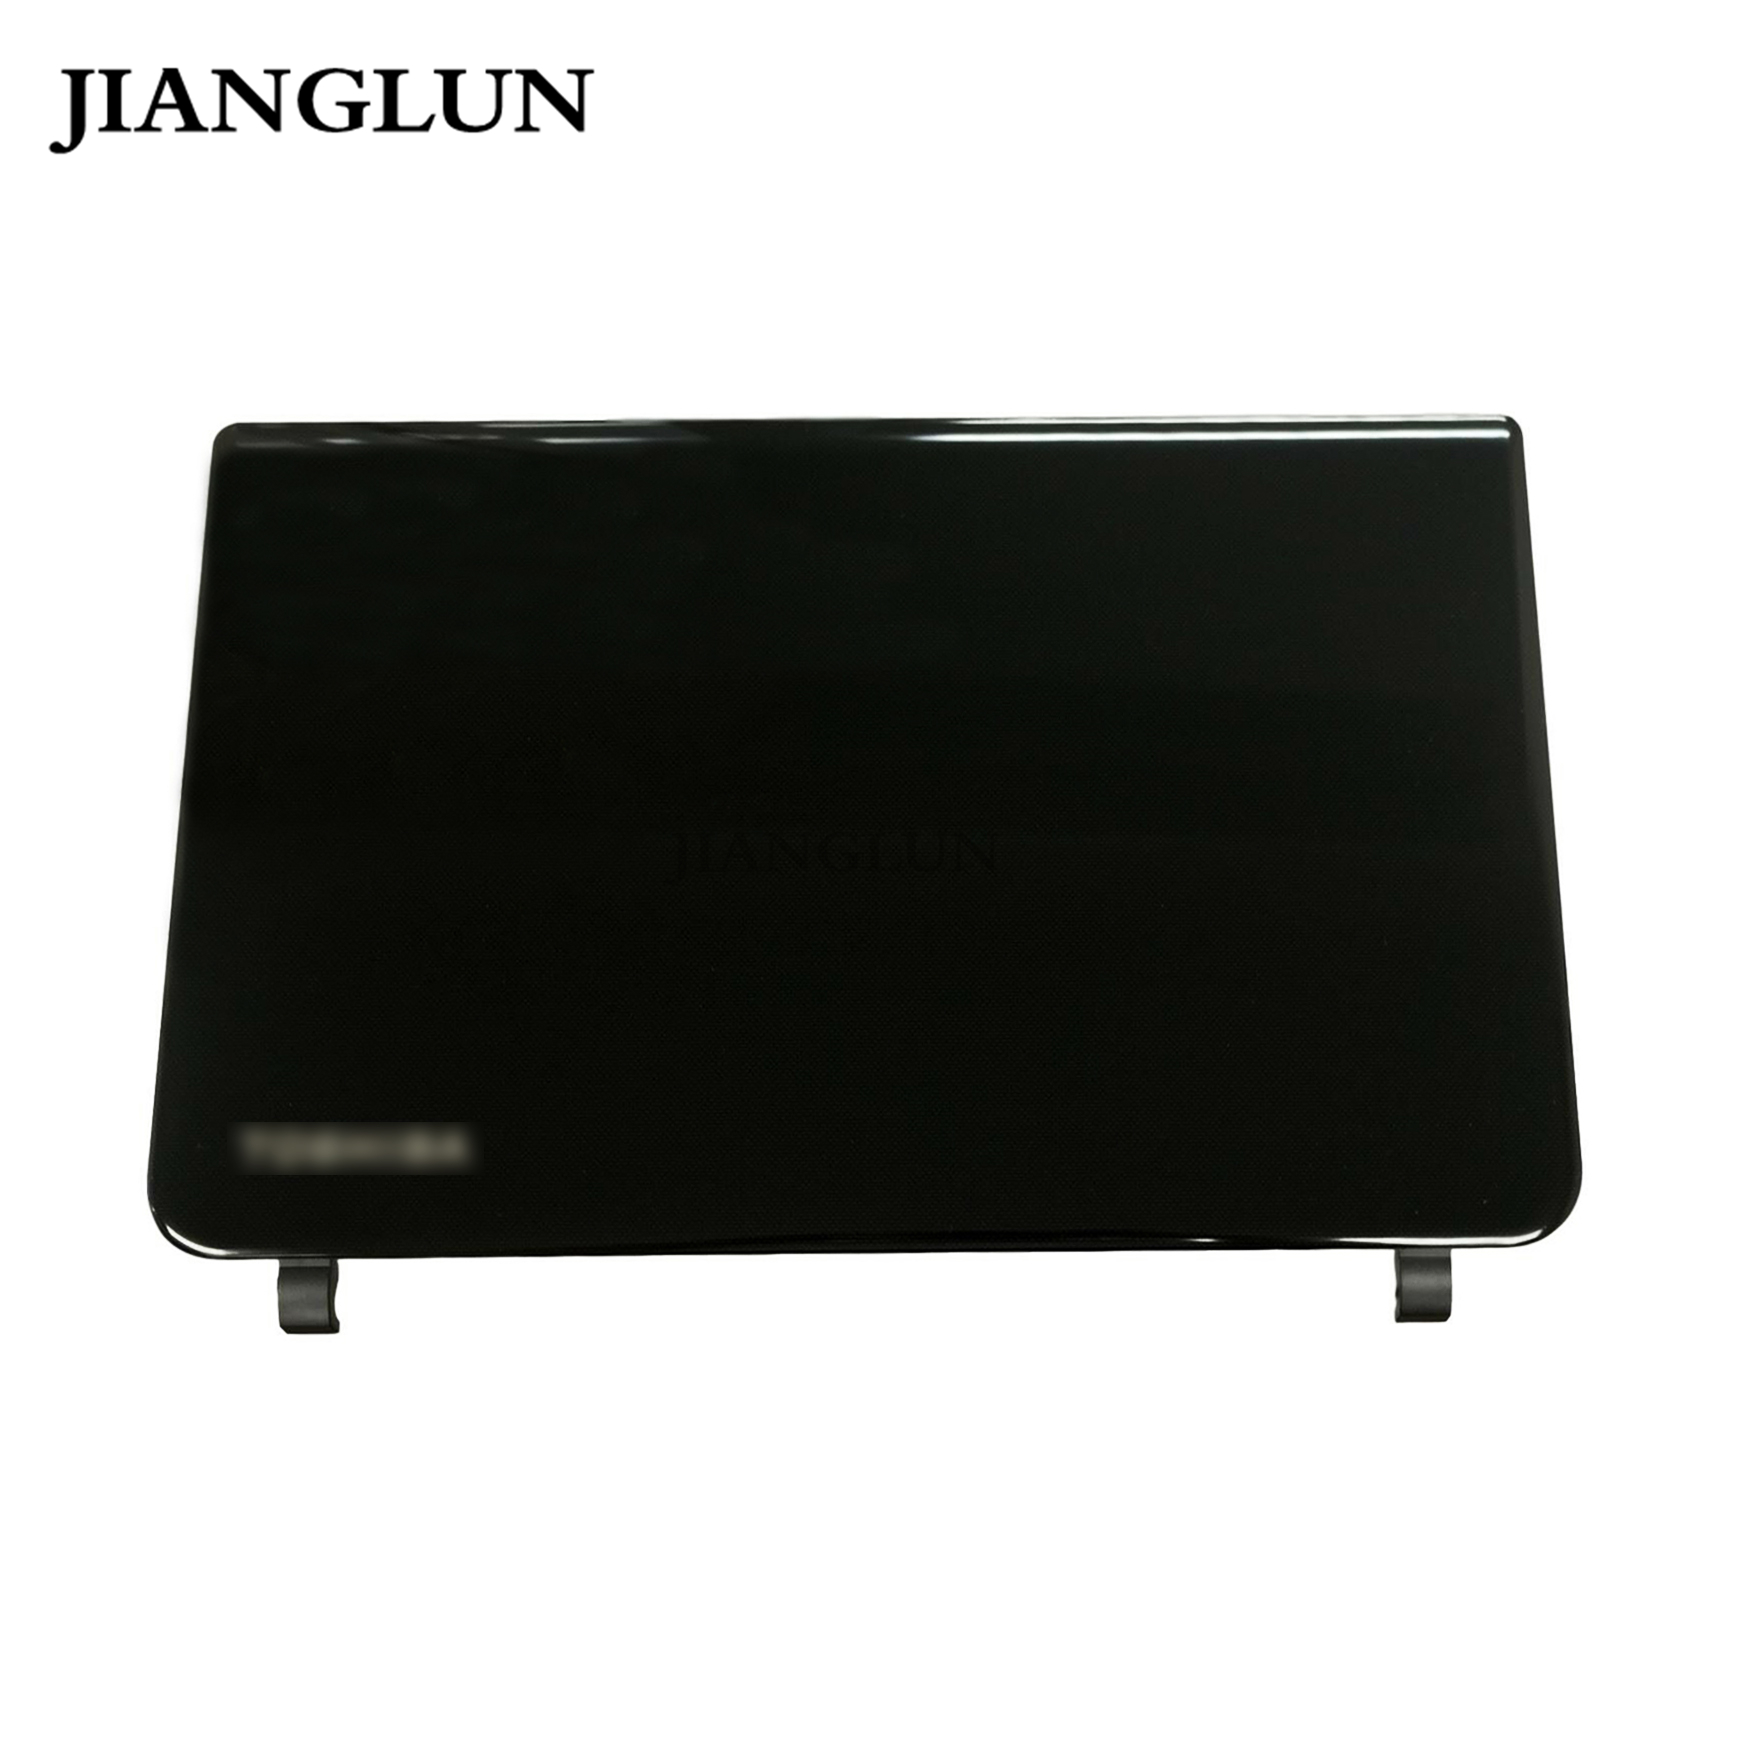 JIANGLUN LCD Back <font><b>Cover</b></font> For <font><b>Toshiba</b></font> Satellite <font><b>L50</b></font>-B Black color image